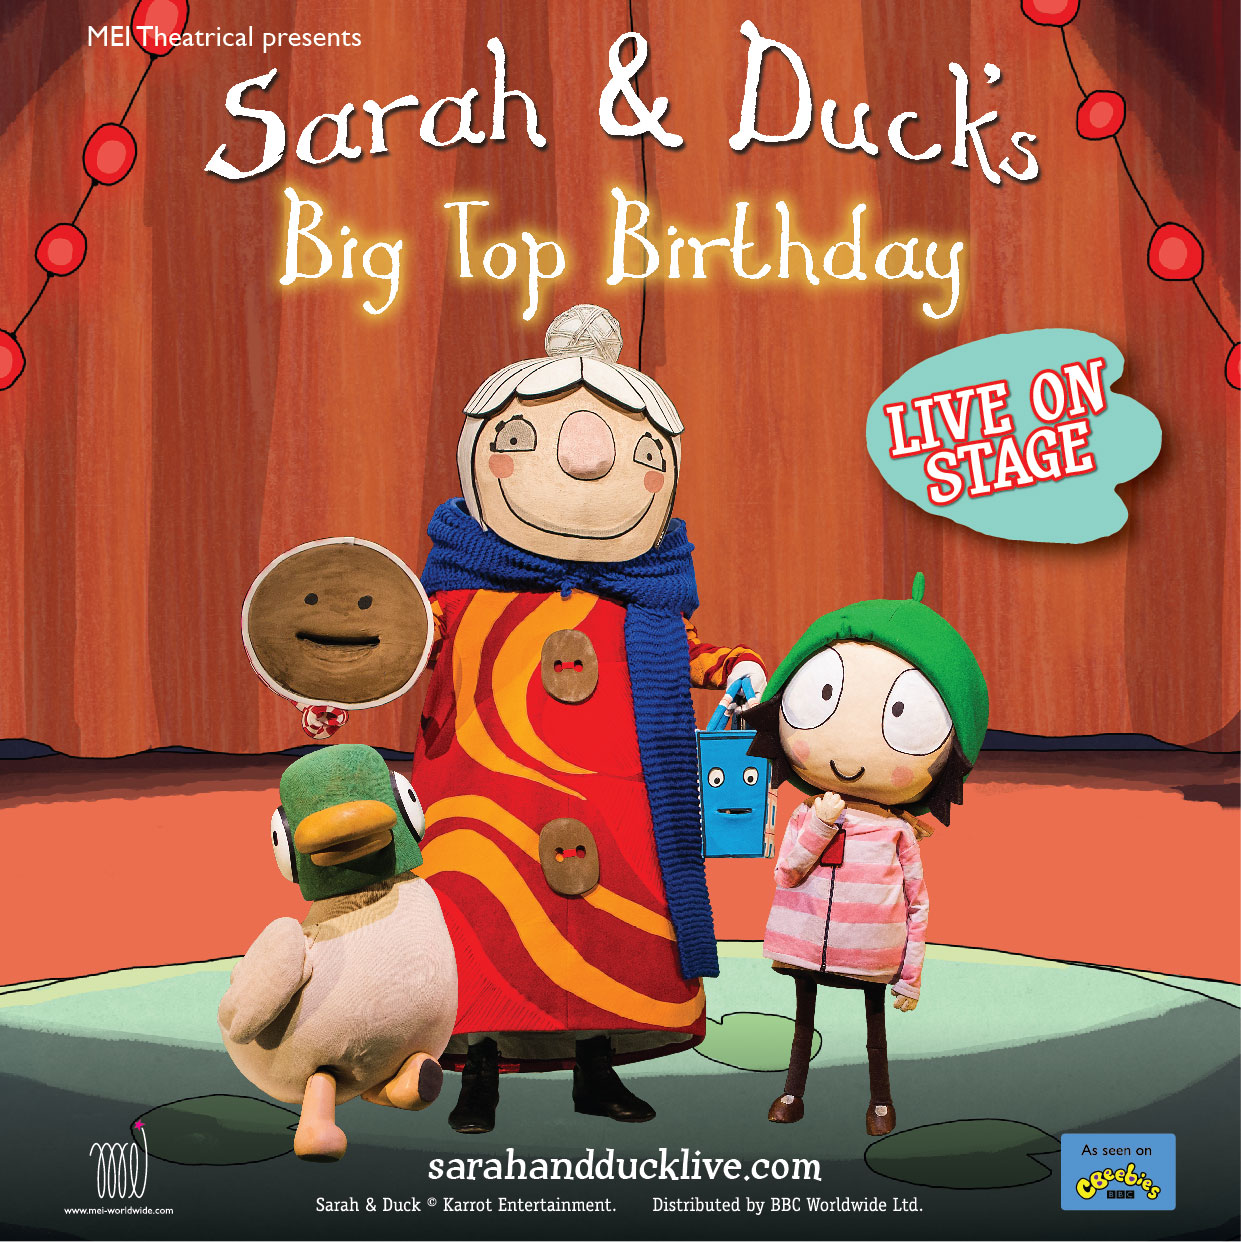 Celebrations galore as CBeebies favourites Sarah and Duck bring their Big Top Birthday to Milford Haven this Easter